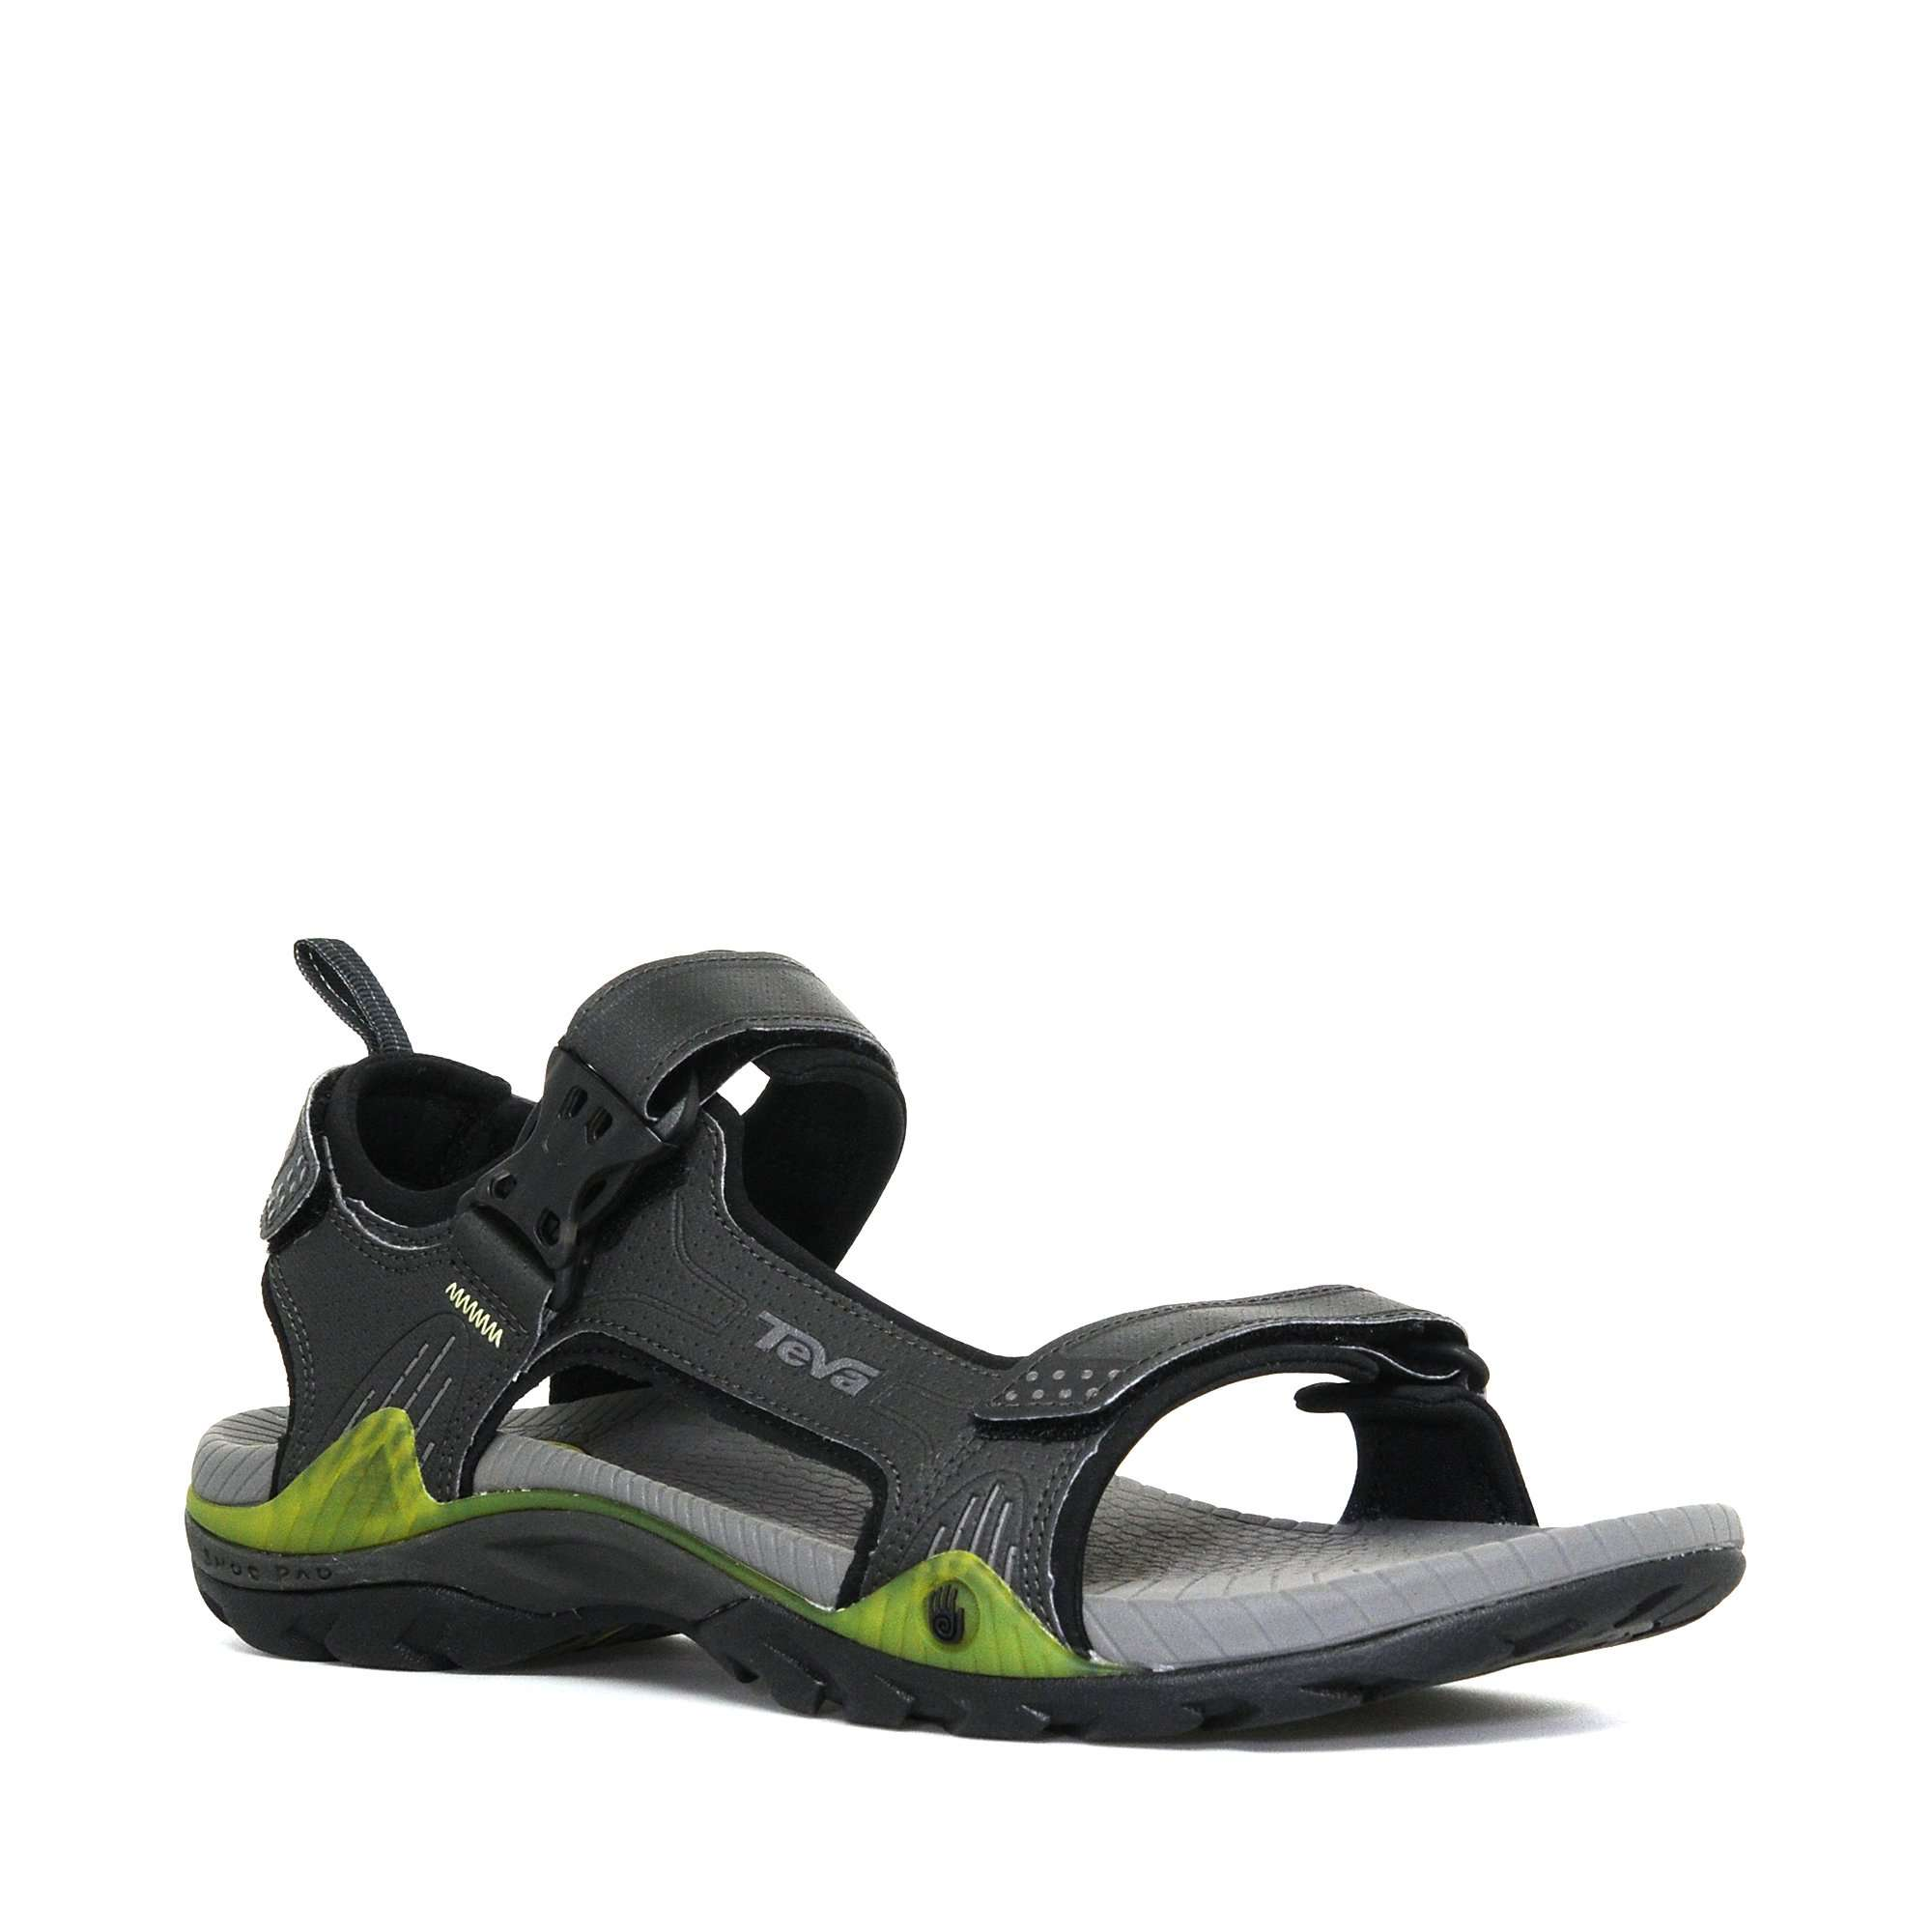 TEVA Men's Toachi 2 Sandals